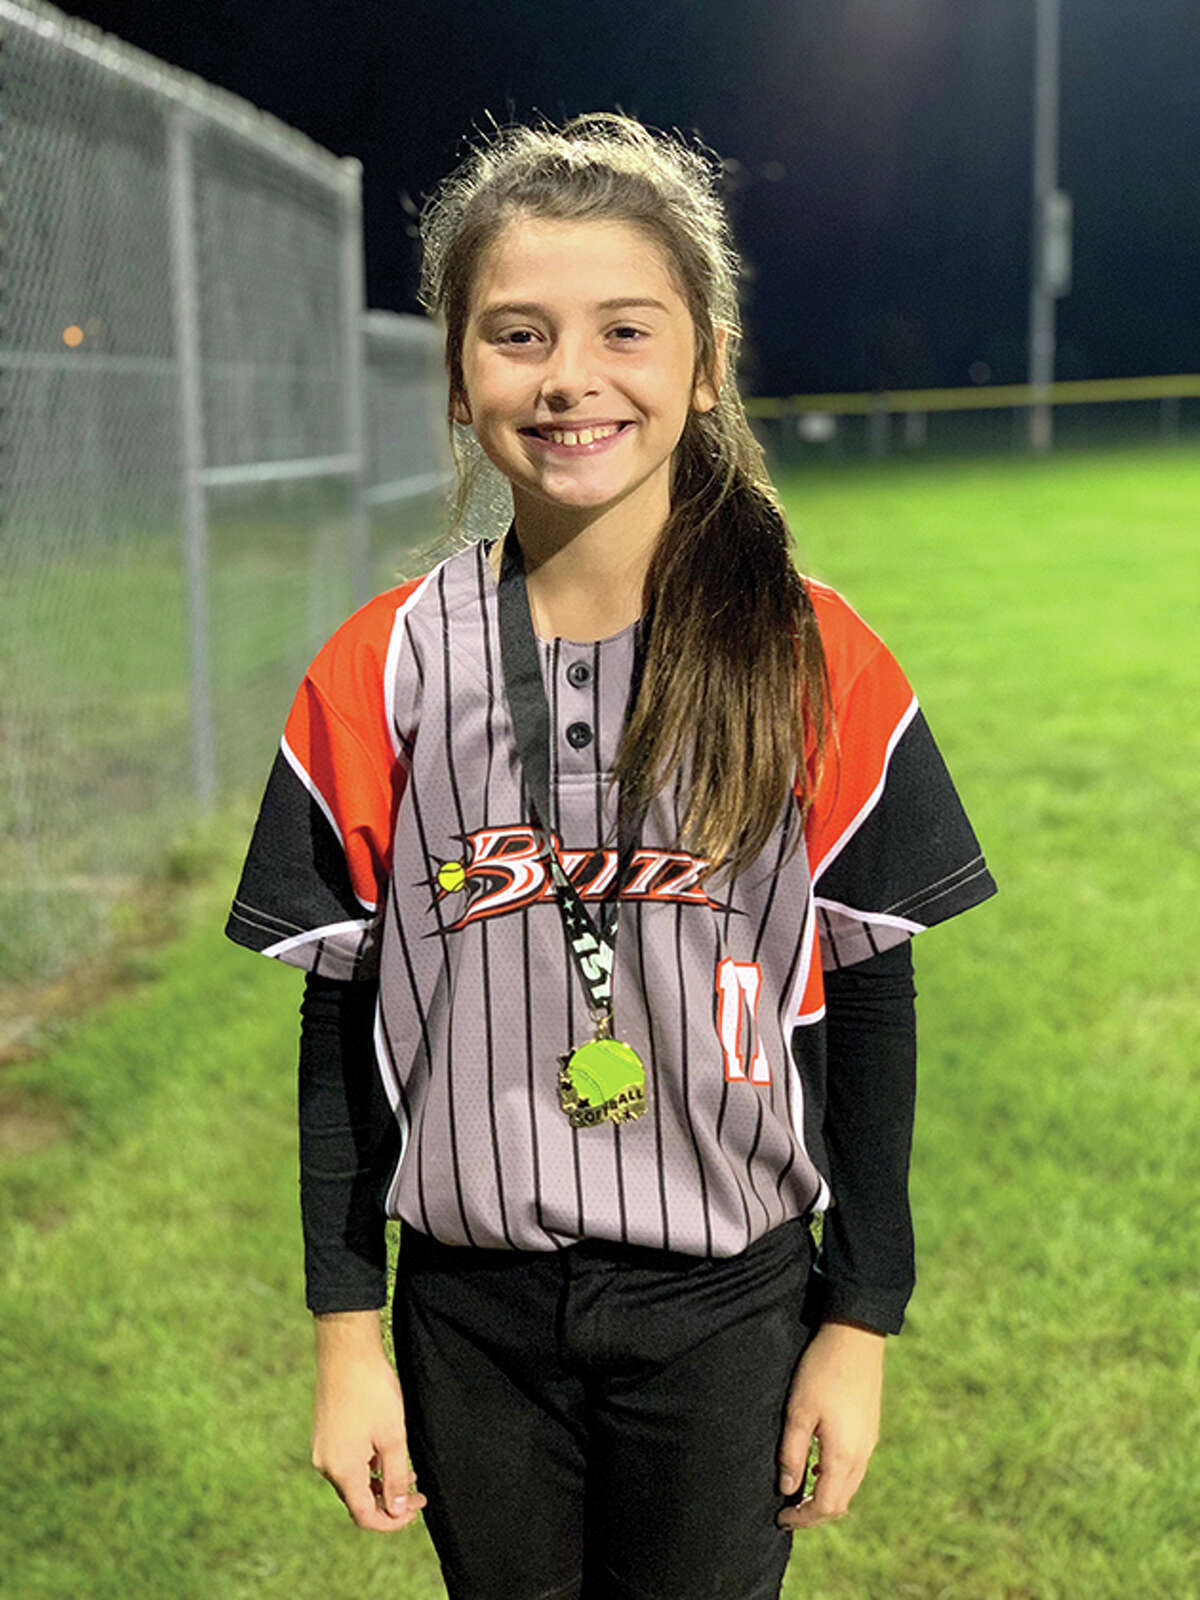 Alayna Capps, 11, recently had surgery to remove a brain tumor. Beardstown residents now are banding together to help raise money for future surgeries and cover costs for the Capps family.